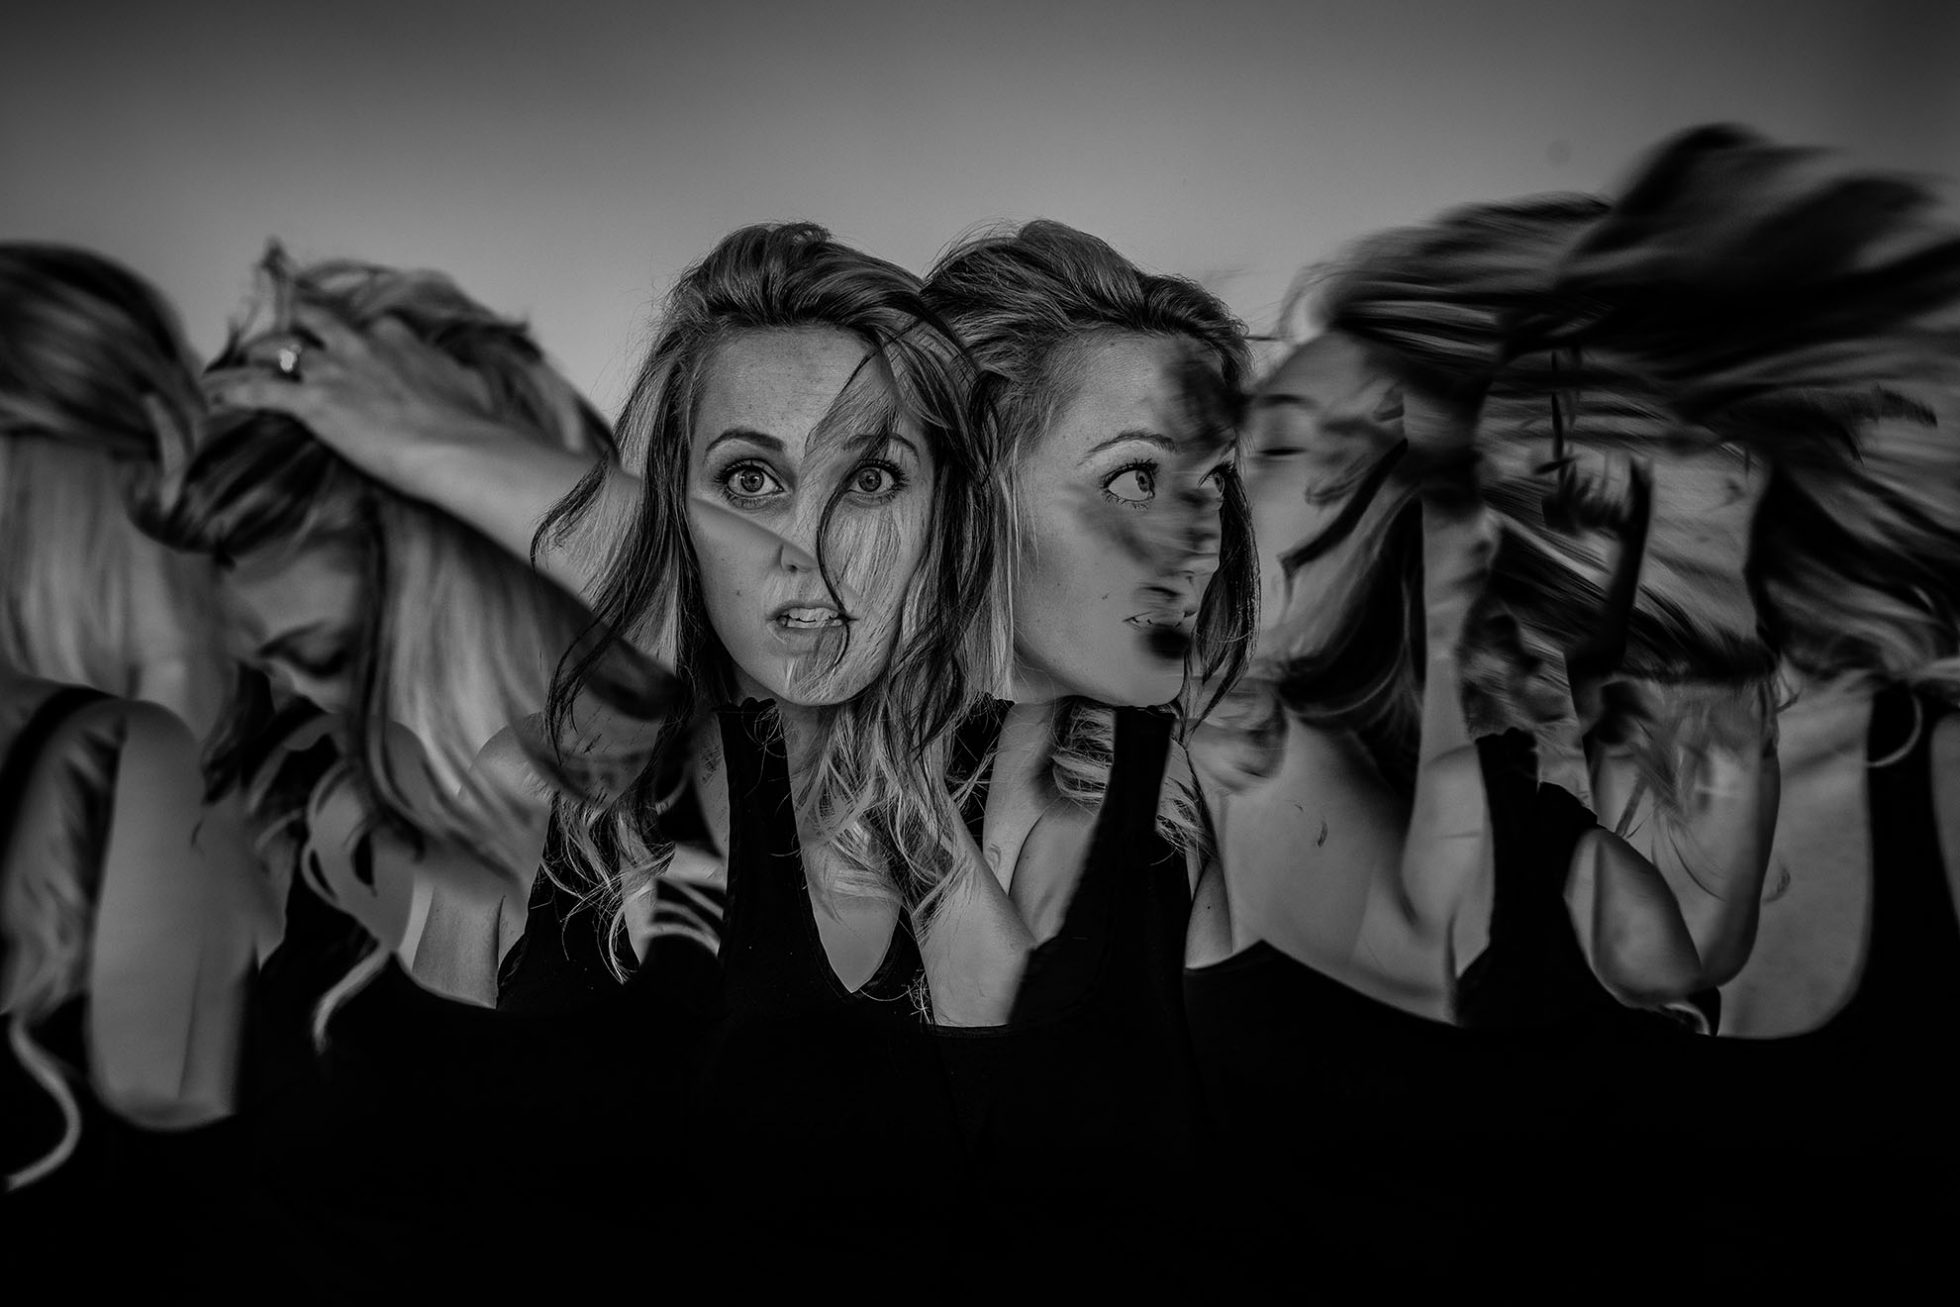 Chaos in black and white a self portrait